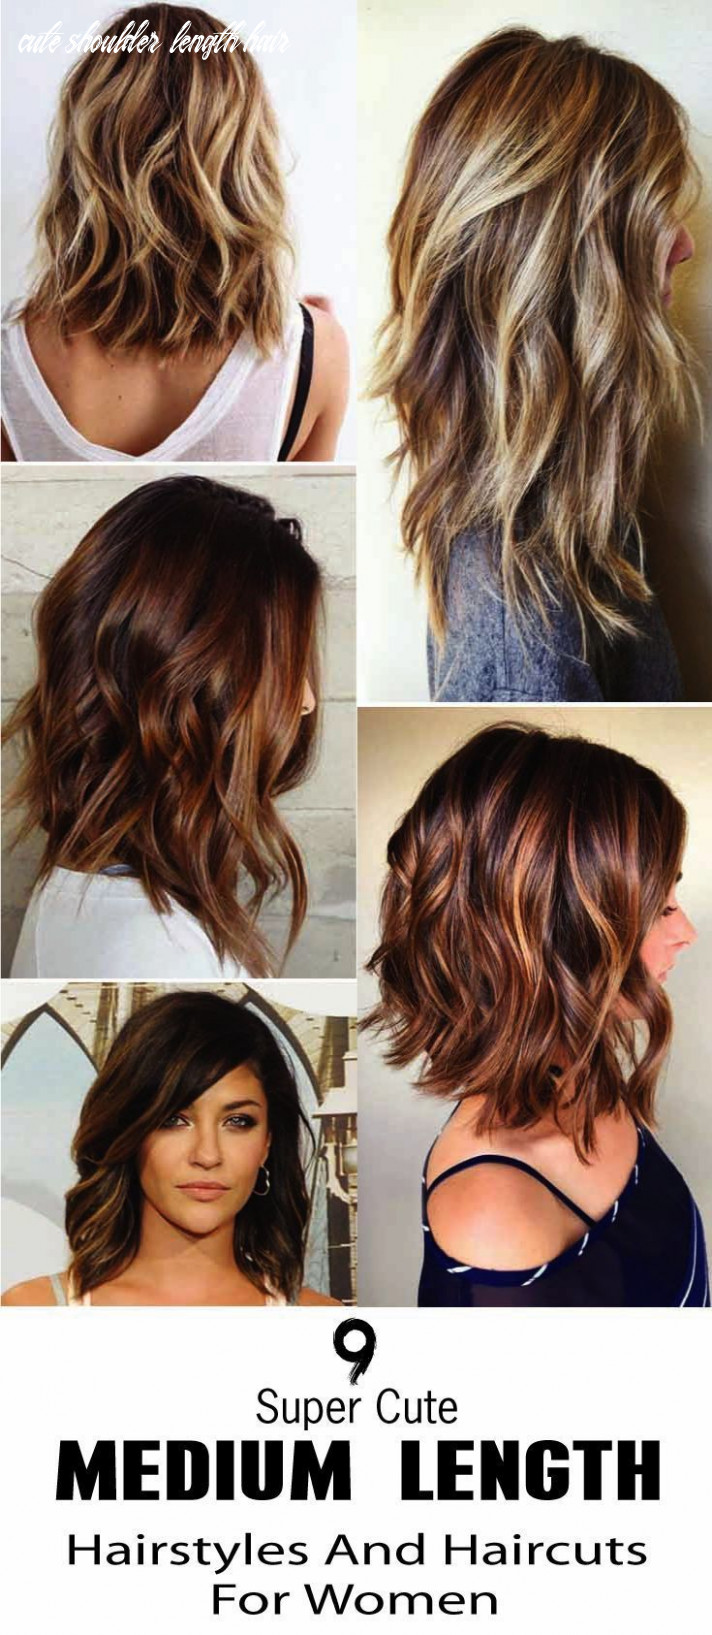 Pin on hairstyle cute shoulder length hair